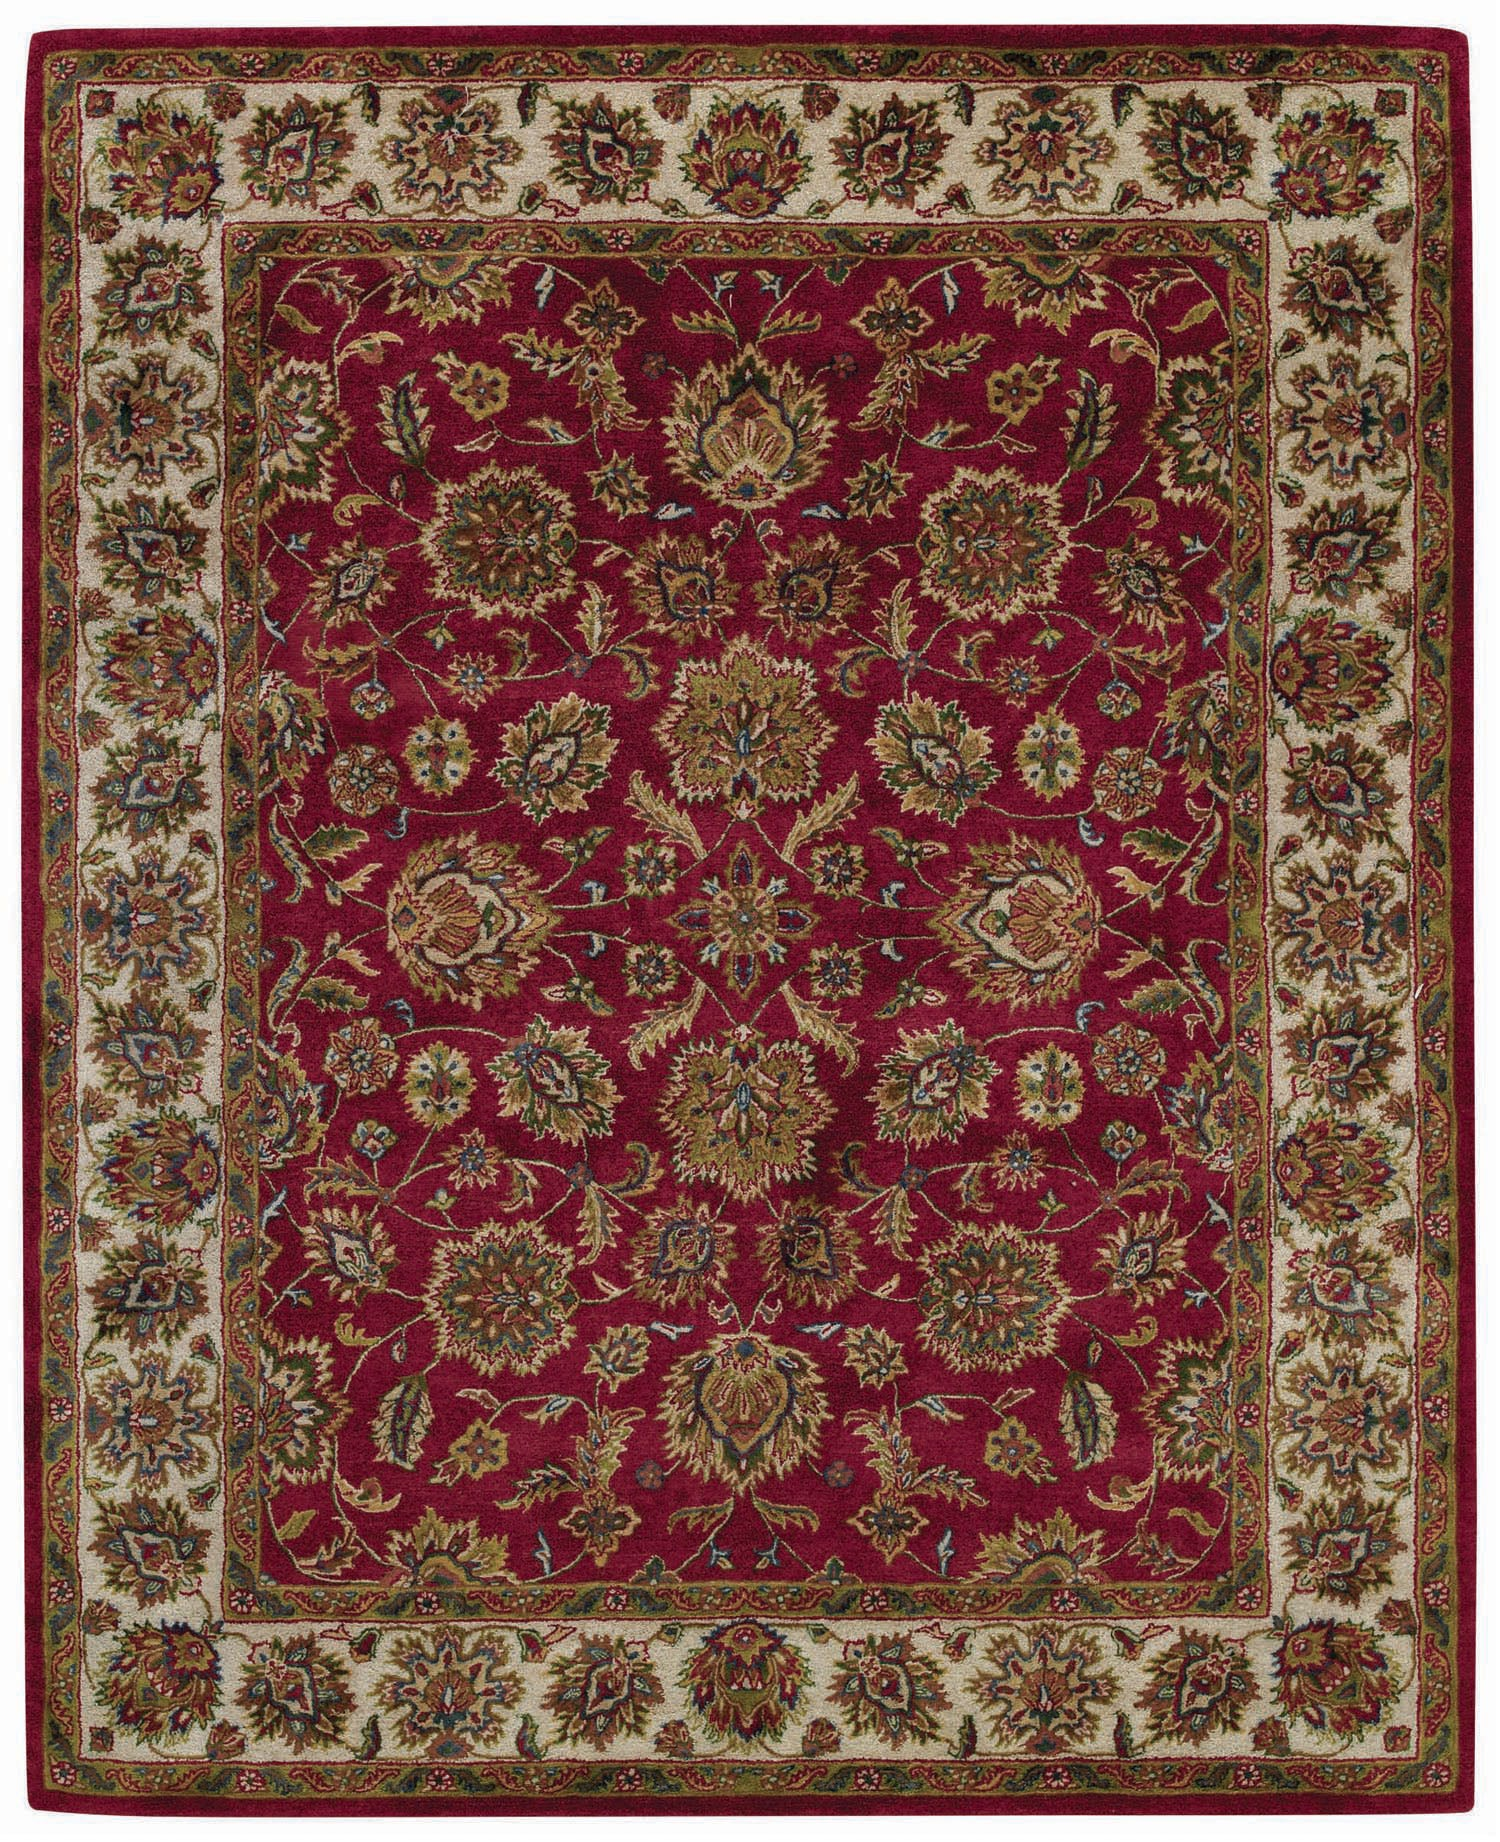 Capel Piedmont Persian 3366 Cinnabar/Ivory 565 Area Rug main image